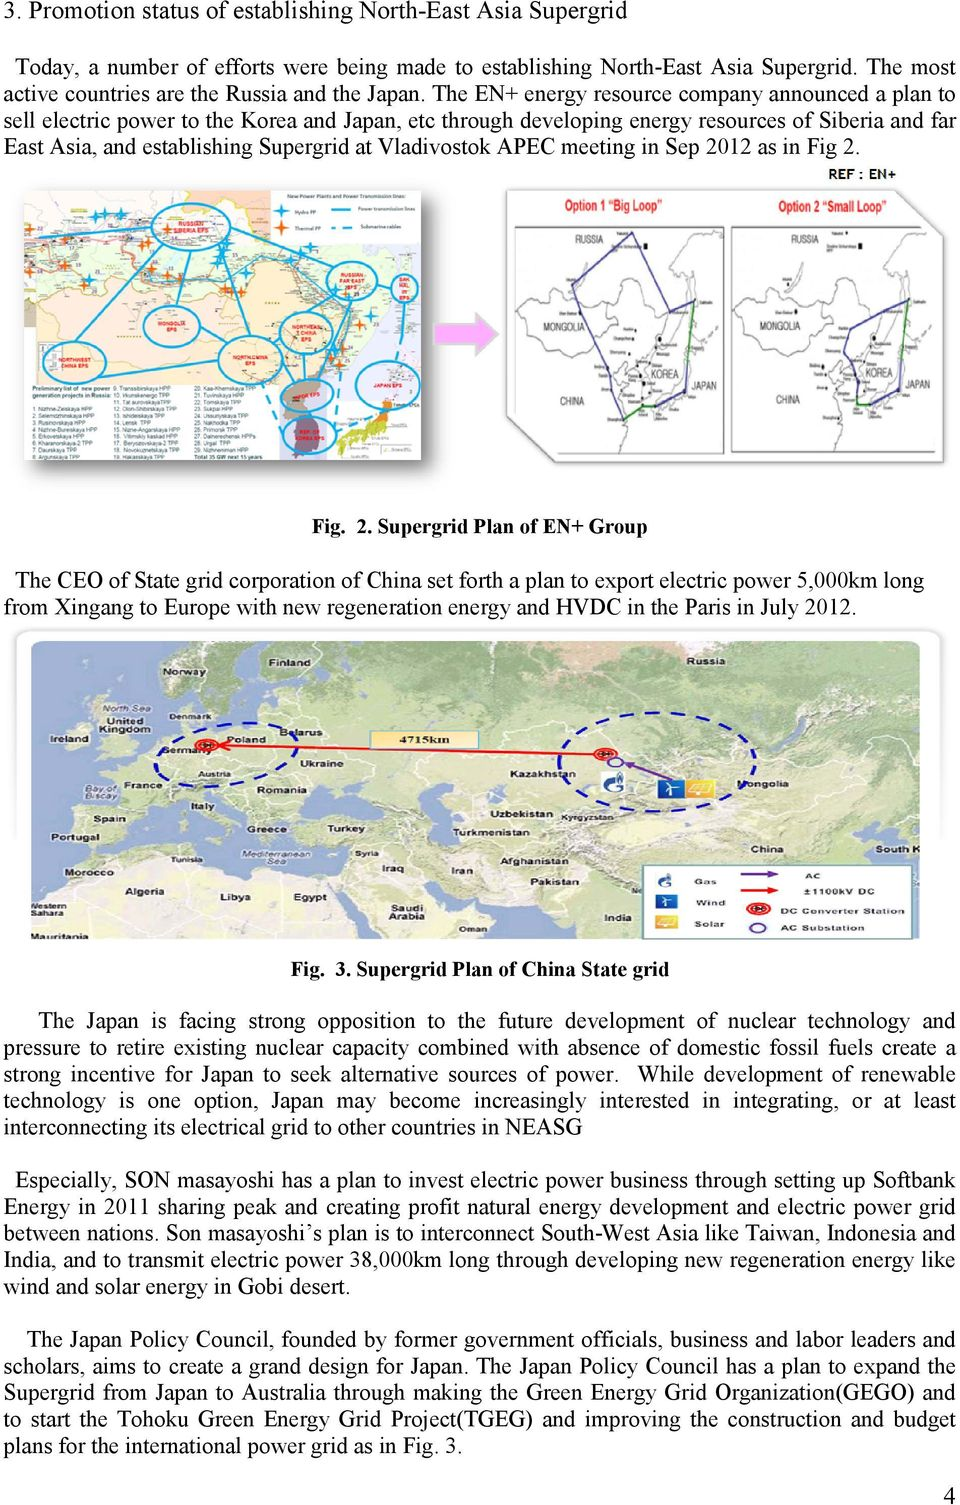 The EN+ energy resource company announced a plan to sell electric power to the Korea and Japan, etc through developing energy resources of Siberia and far East Asia, and establishing Supergrid at